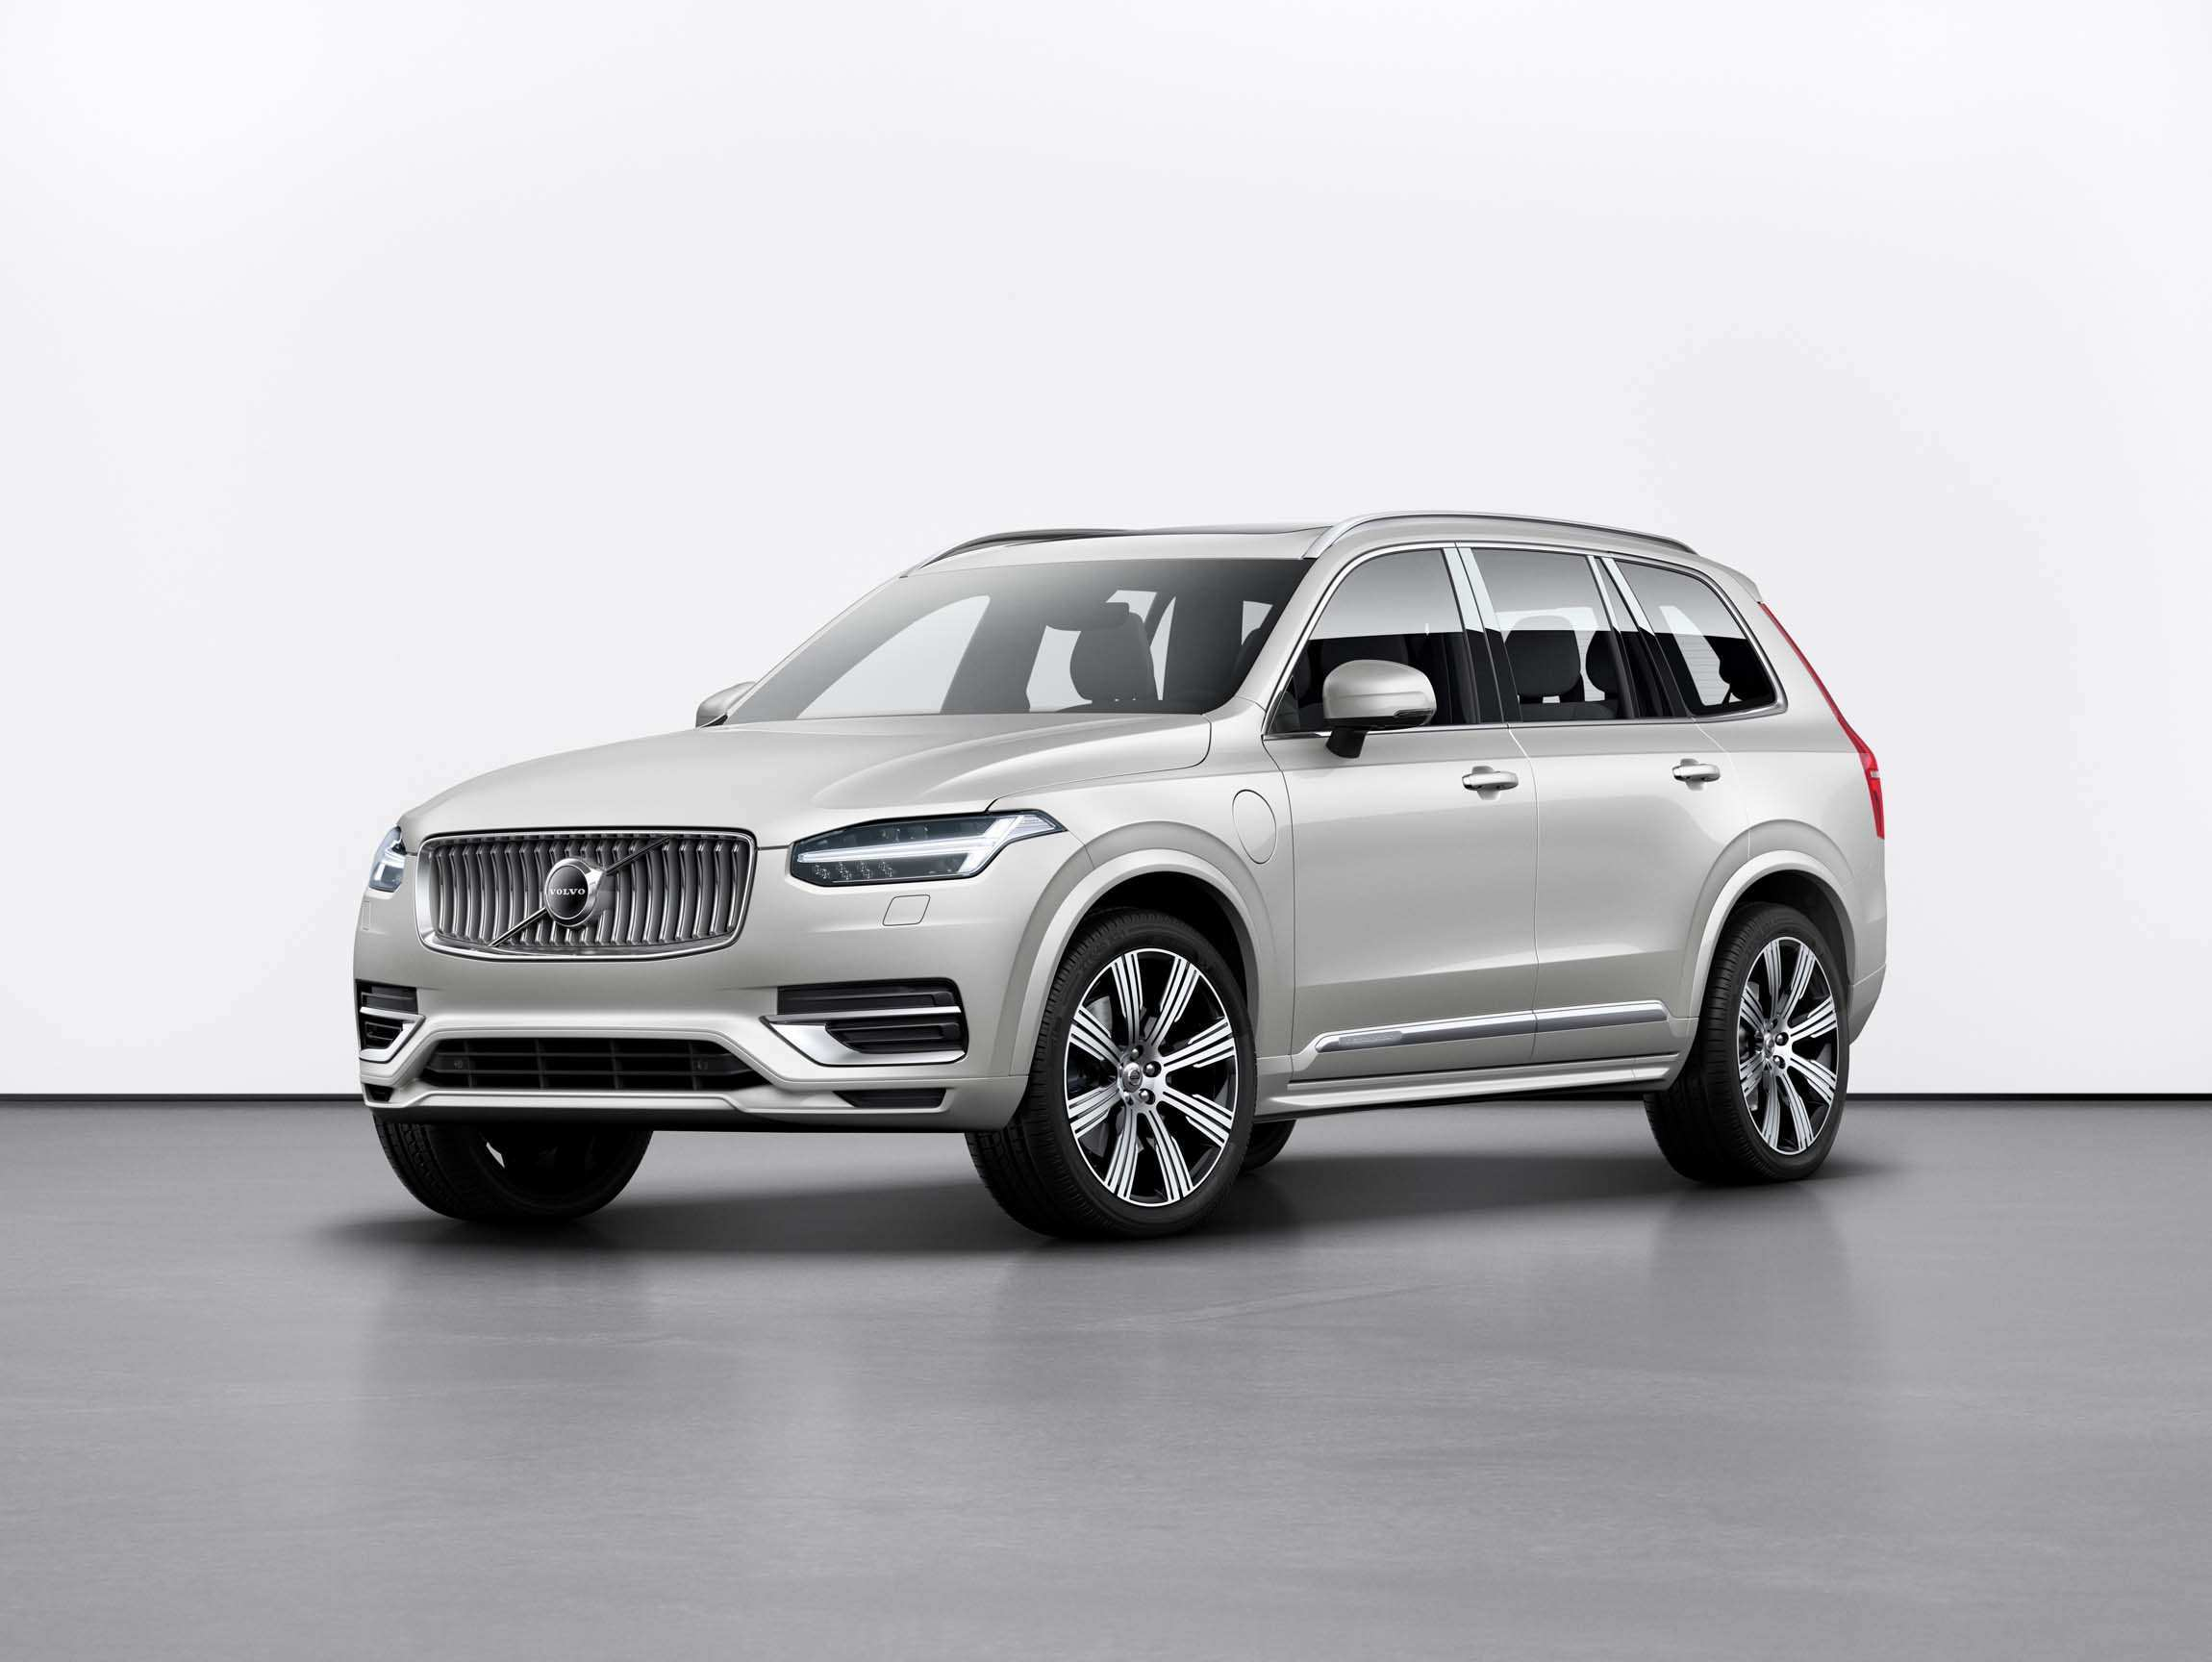 97 Concept of Volvo Electric Suv 2020 Specs by Volvo Electric Suv 2020